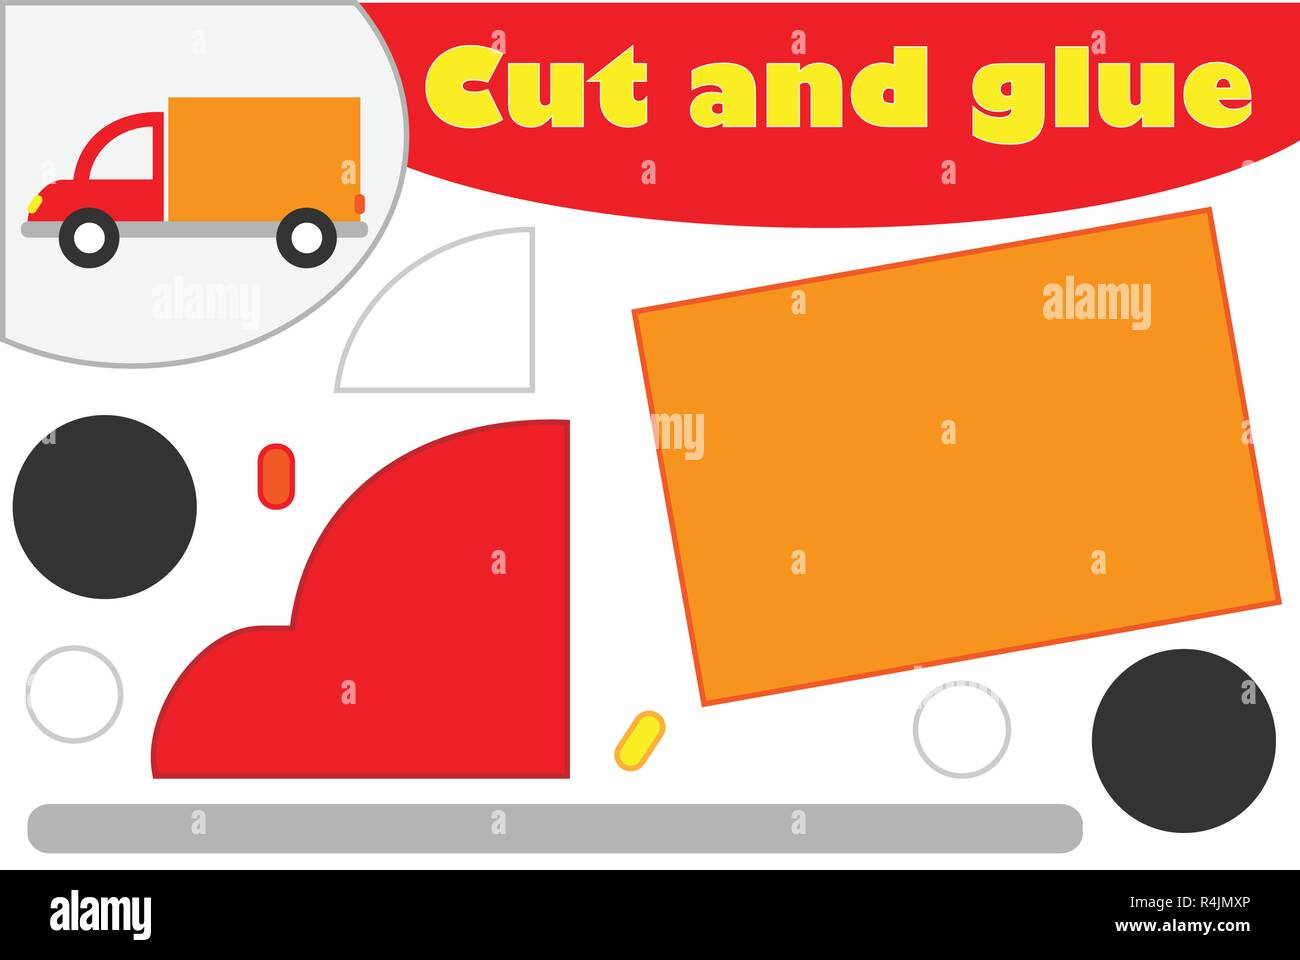 Truck In Cartoon Style Education Game For The Development